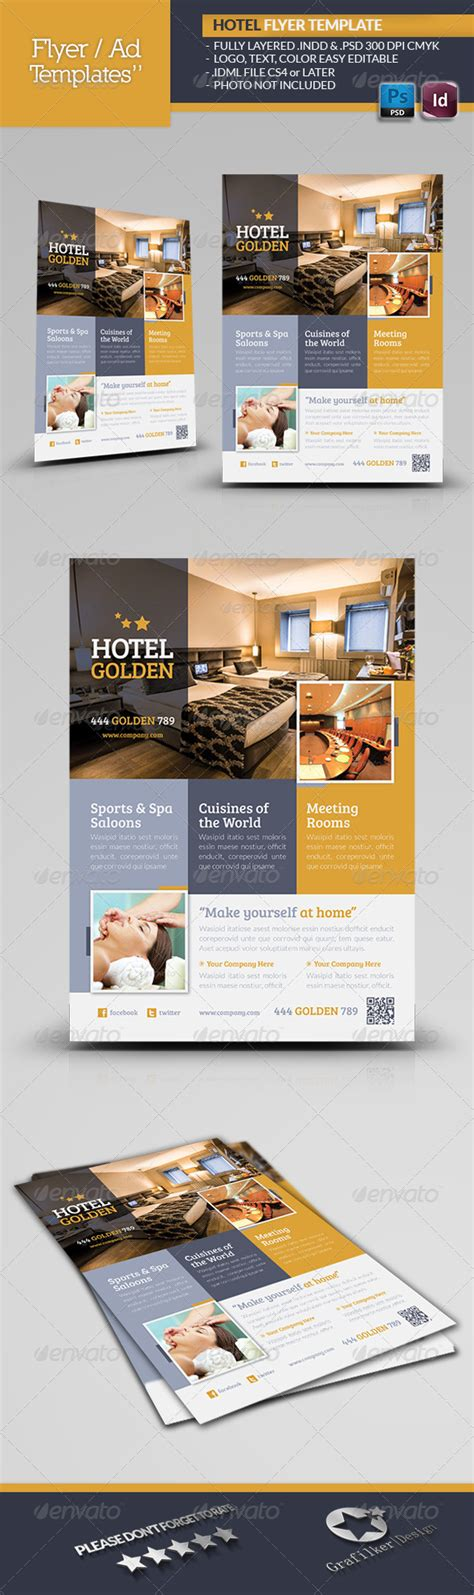 Hotel Golden Flyer Template 4965721 Stock Vector Design Template Hotel Flyer Template